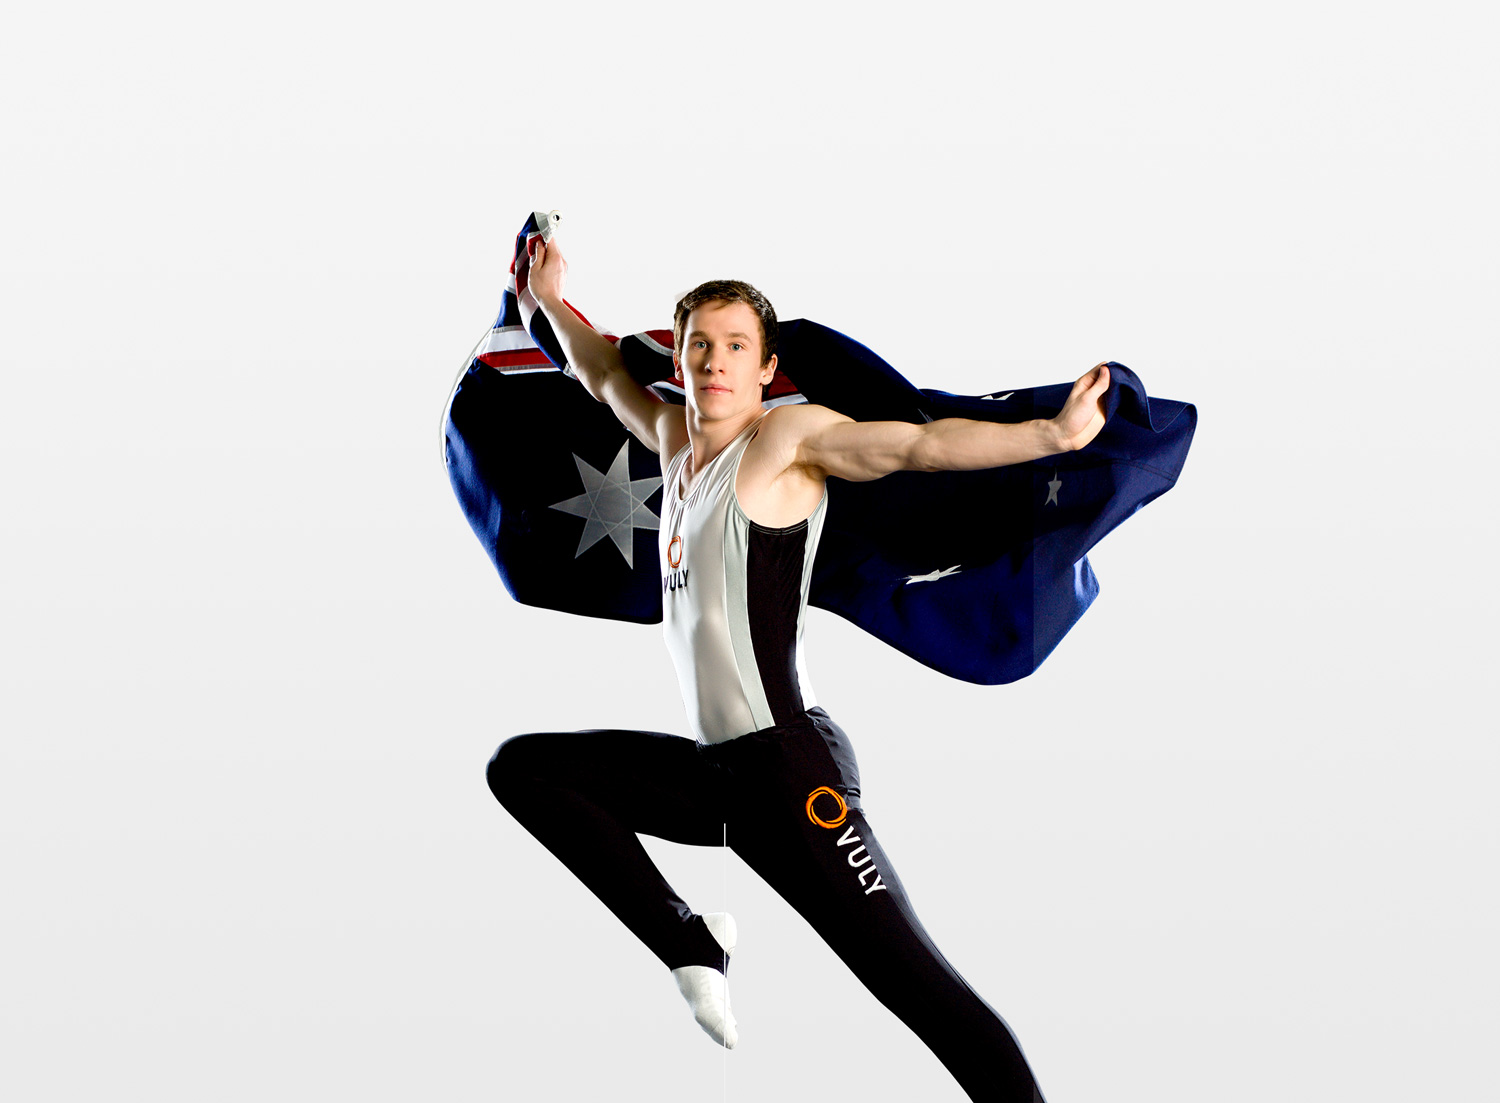 Meet our athlete - Blake Gaudry (AUS)